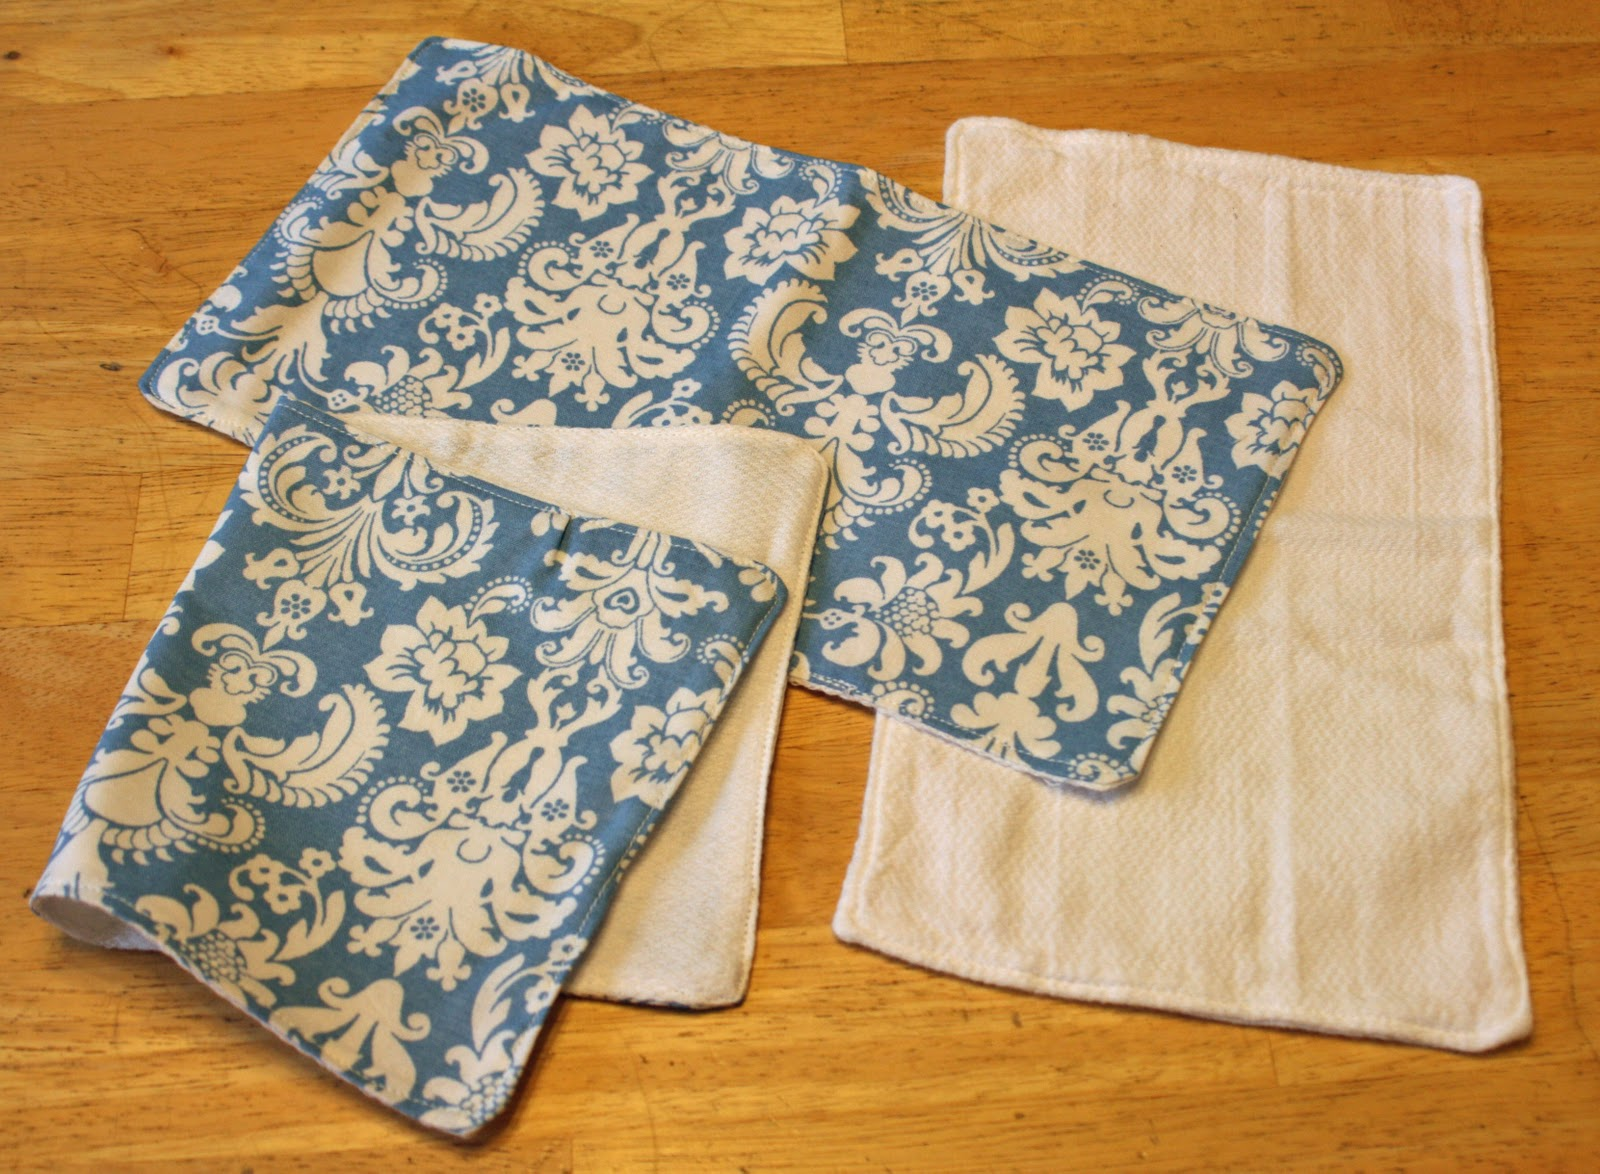 Big W Round Towel Food And Garden Dailies Cloth Napkins And Un Paper Towels